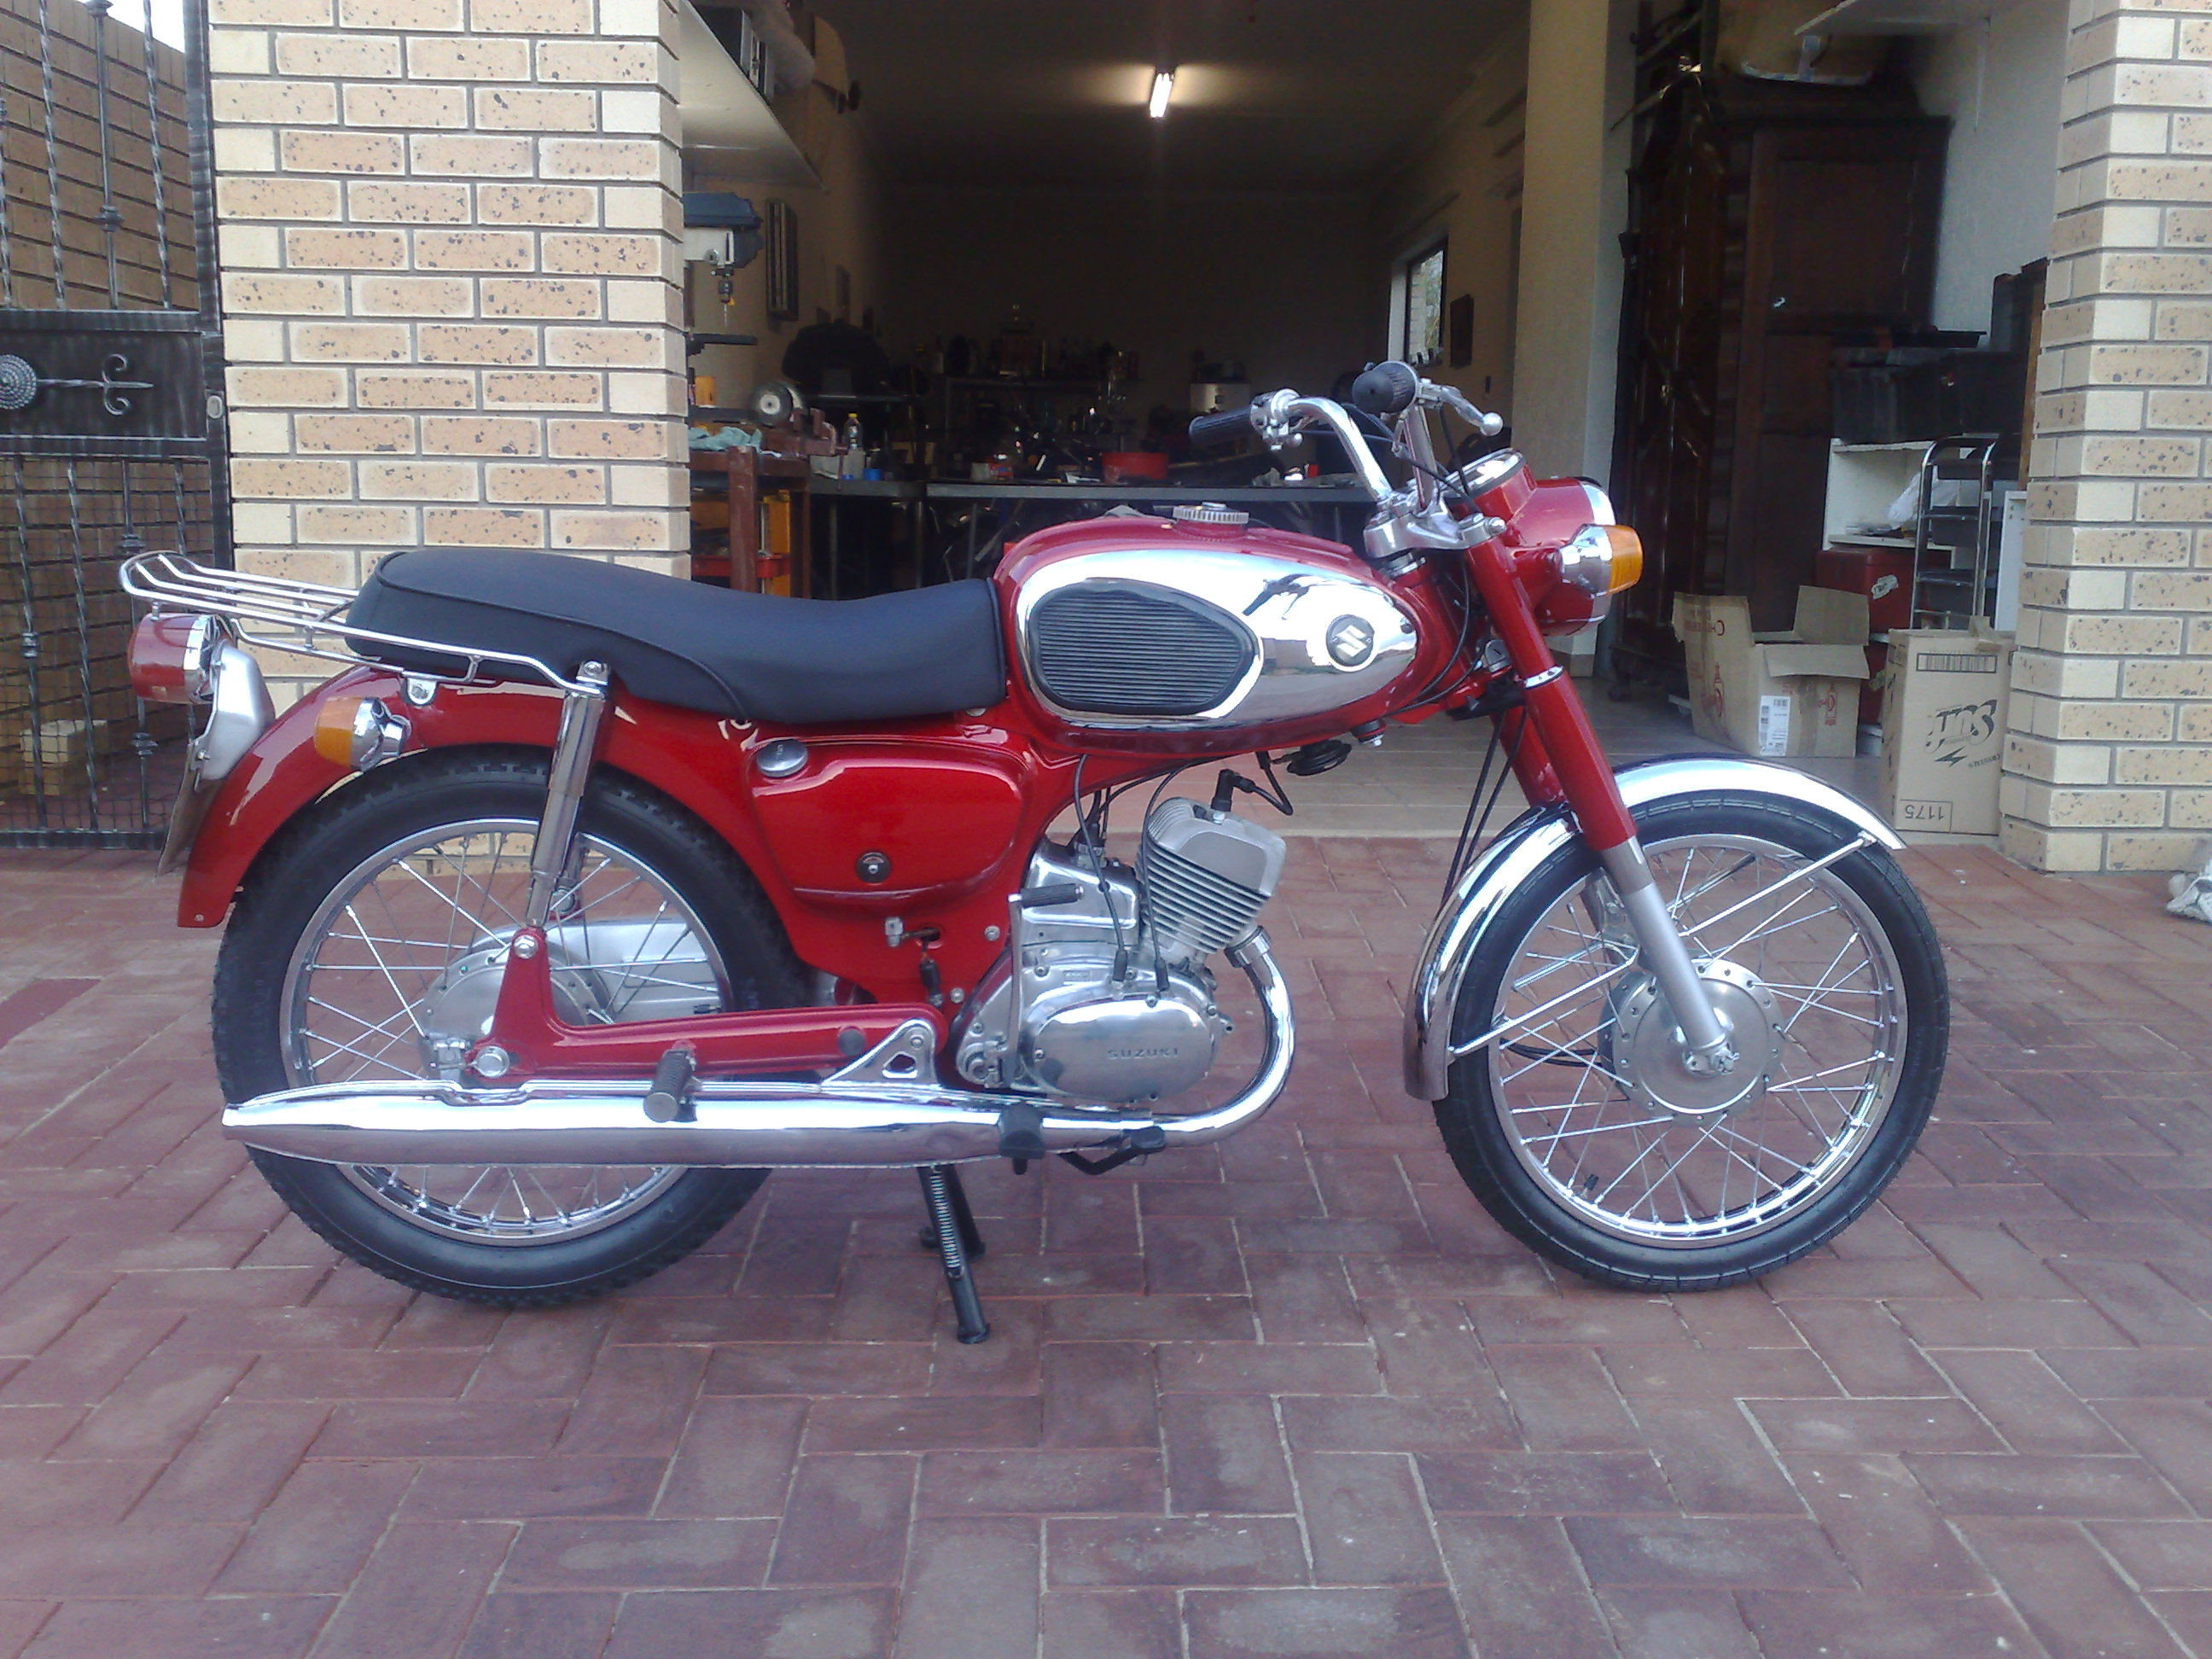 1969 Suzuki B120 after pic 1